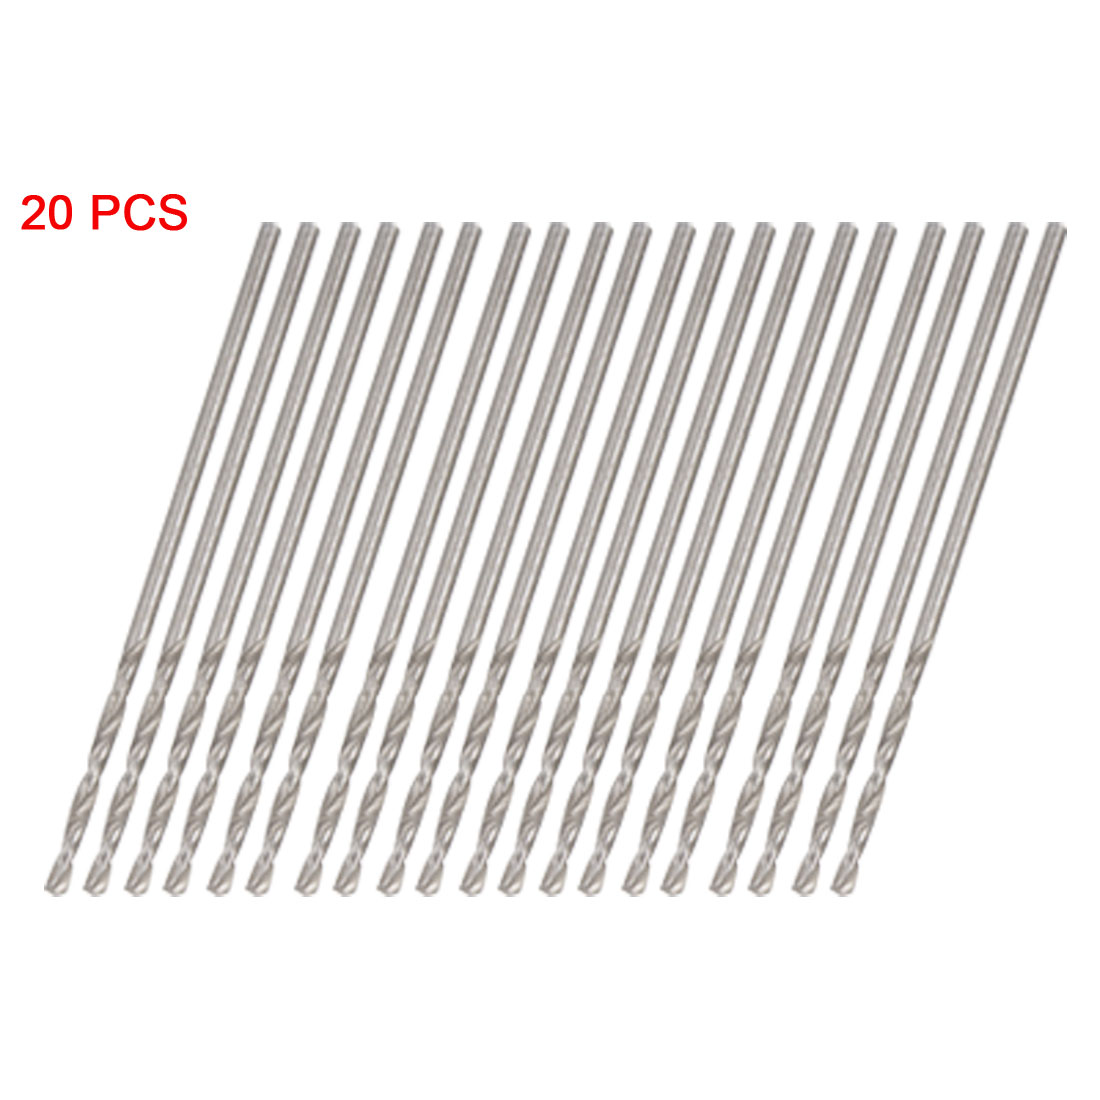 Electrical Drilling Replacement 0.7mm Twist Drill Bit 20 PCS